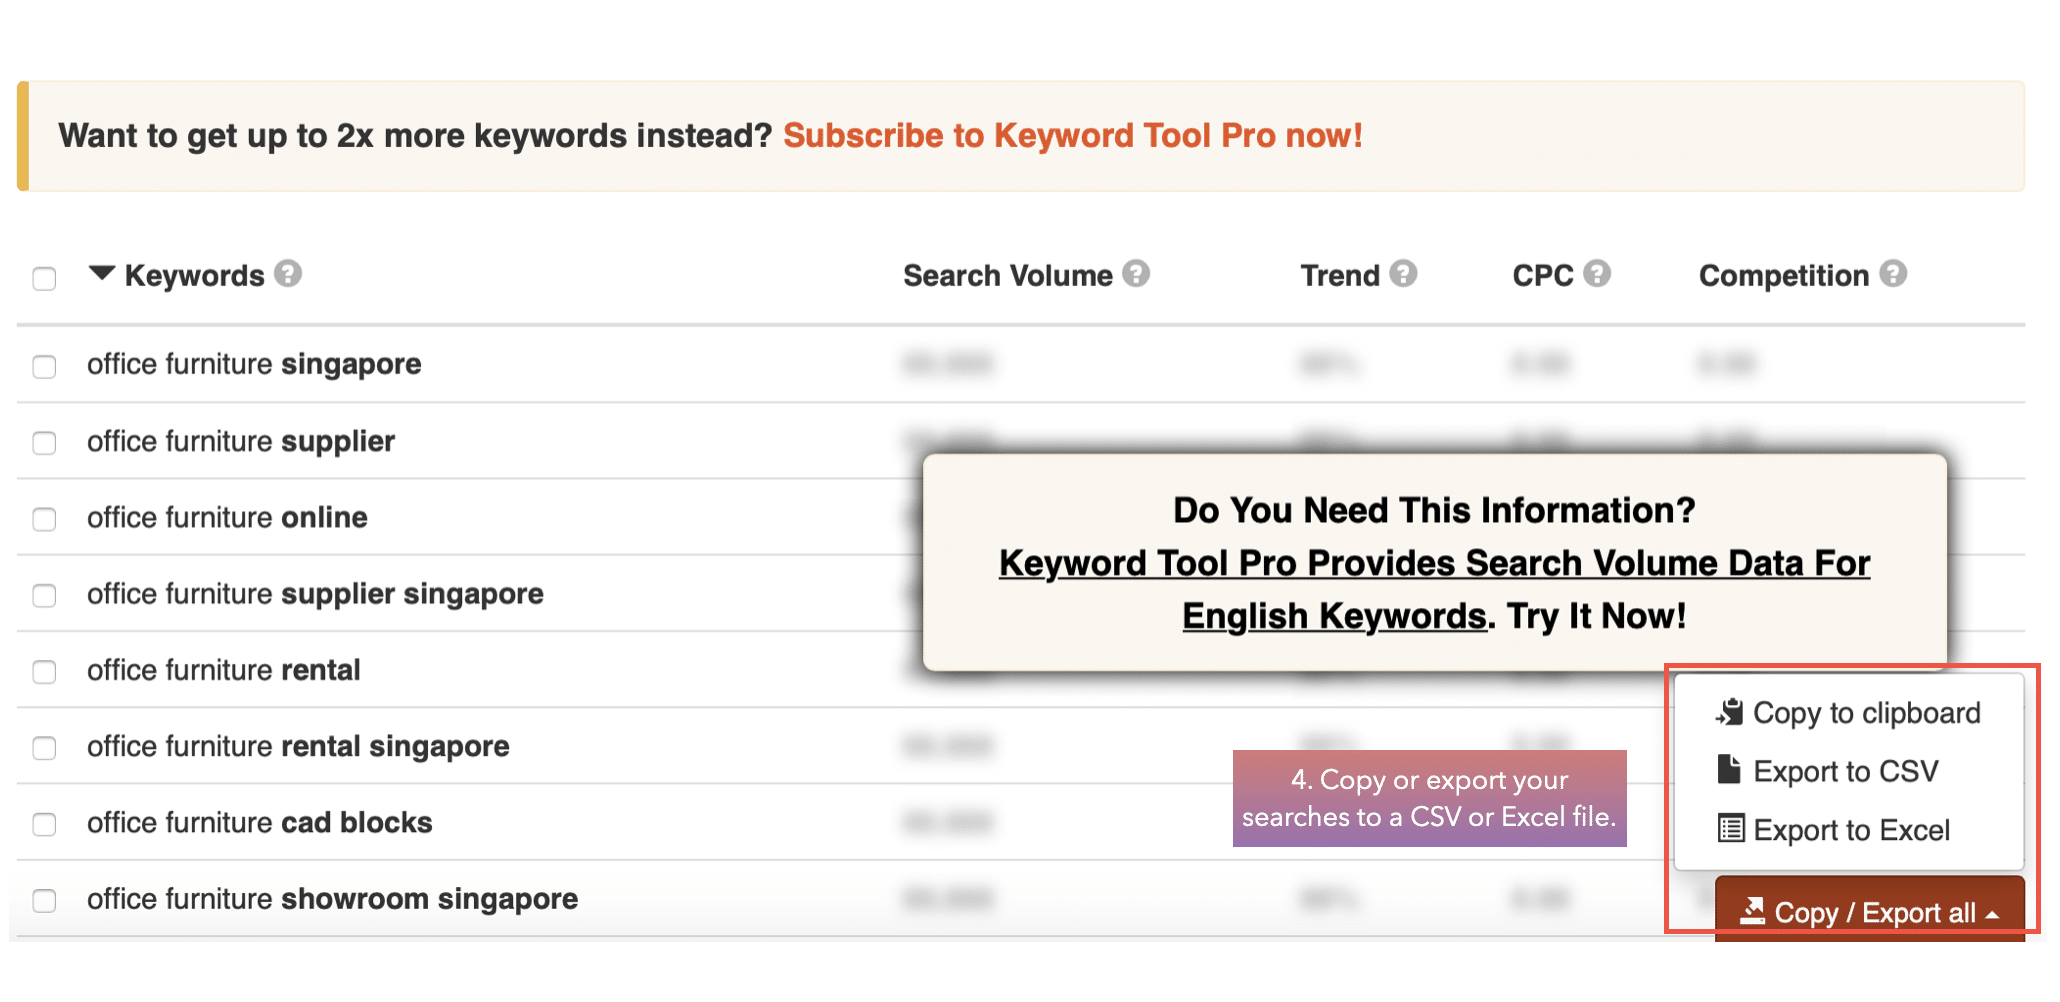 Copy-or-export-your-searches-to-a-CSV-or-Excel-file-keyword-io